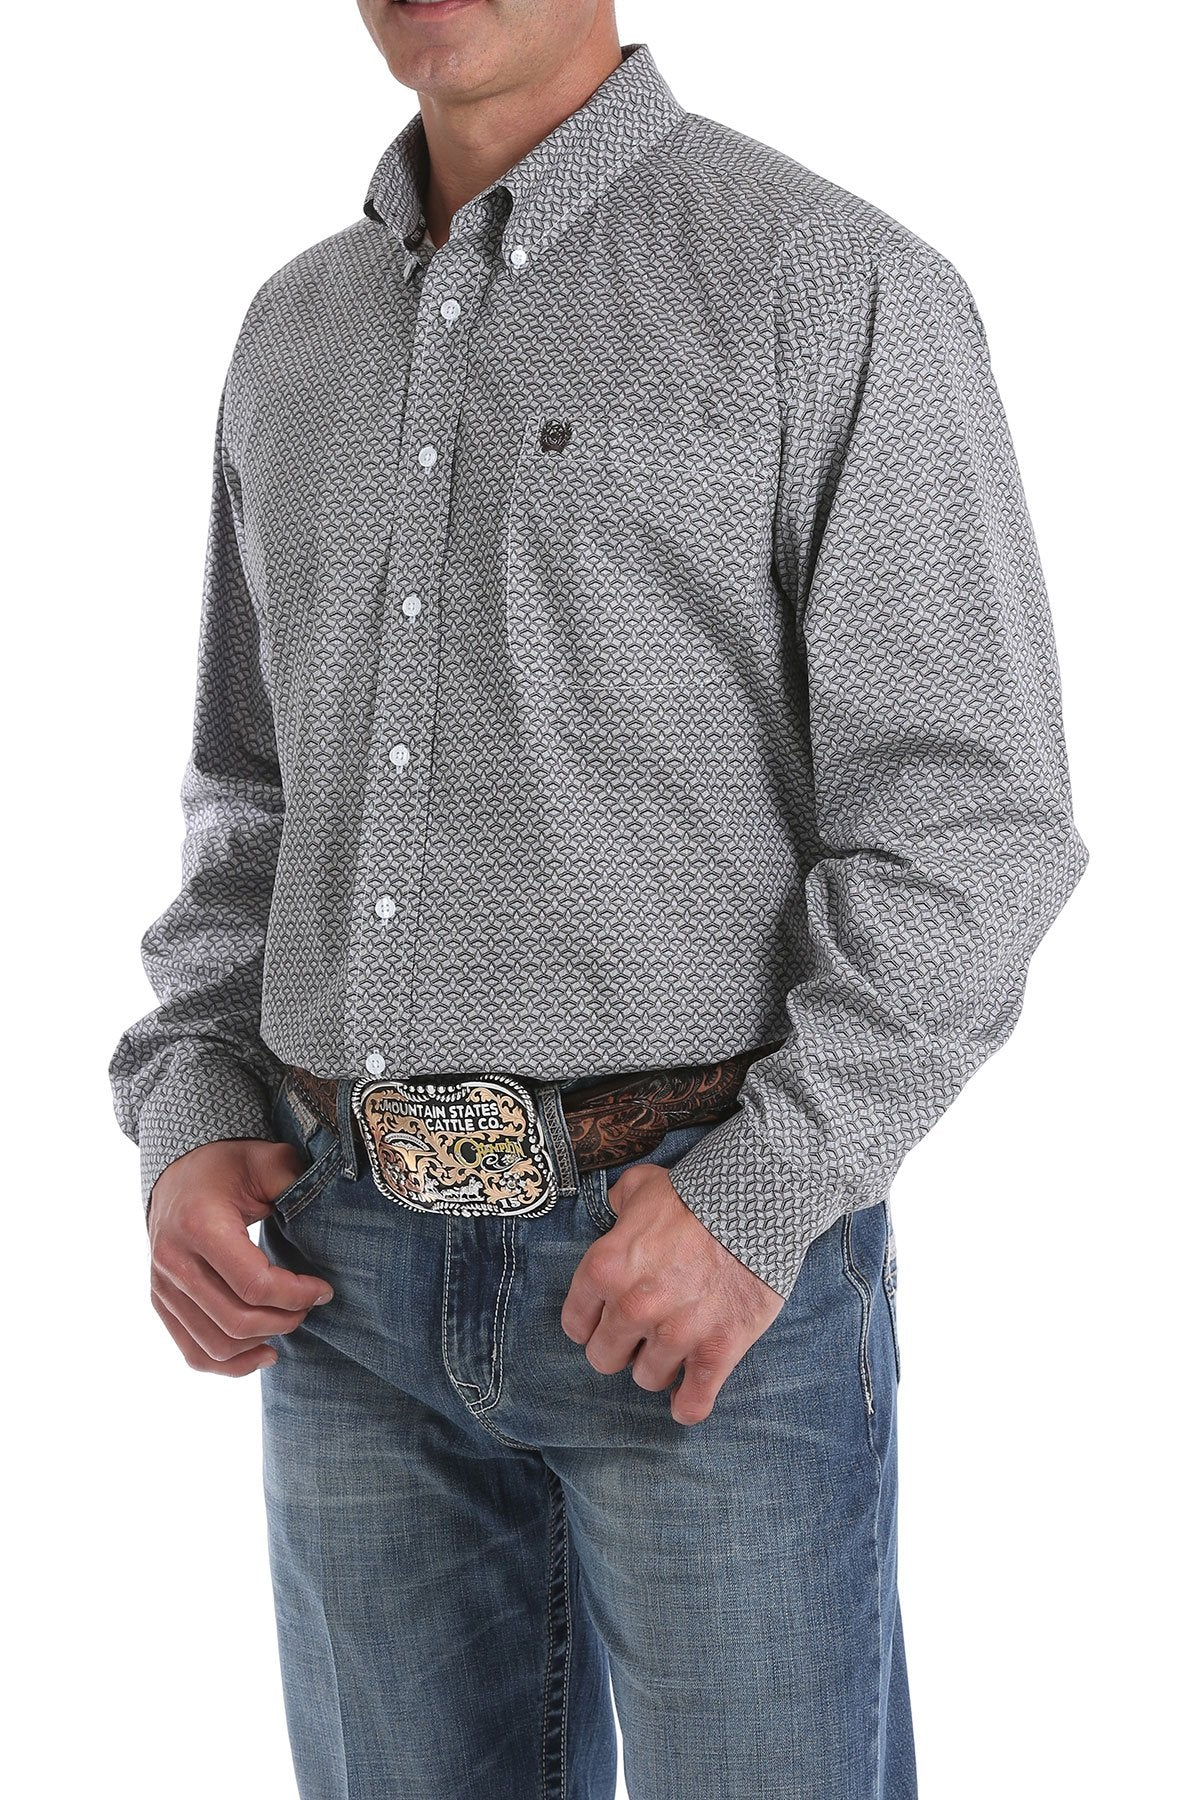 10/1 MENS LT BLUE PRINT LONG SLEEVE SHIRT